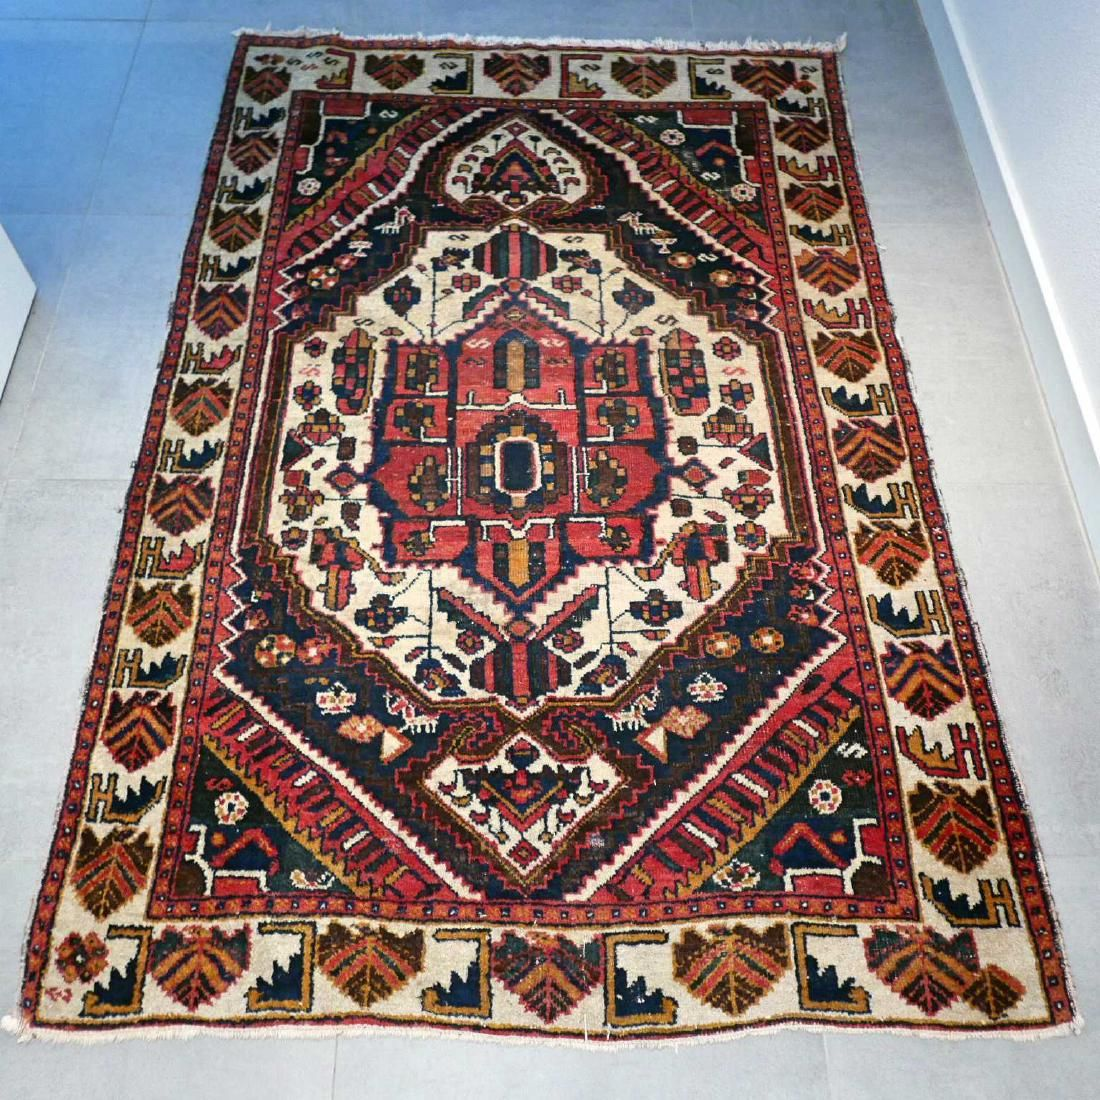 Antique Persian Bakhtiar Wool Hand Knotted Rug 6.3x4.2